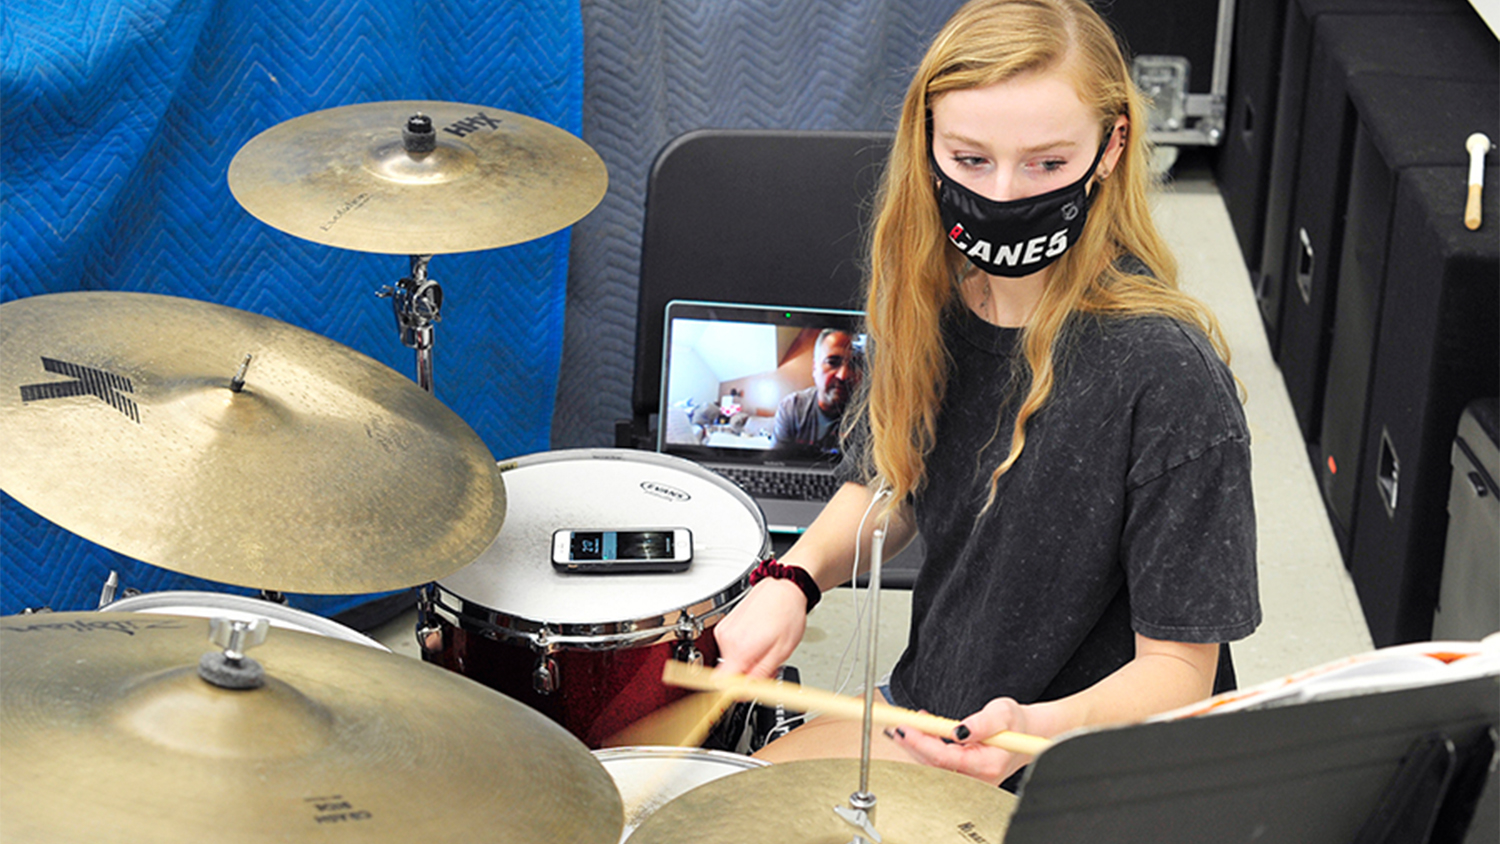 Percussion performance minor AnnE Ford attends her online drum lesson with Dr. Paul Garcia from a practice and recording space set up in Price Music Center for local students to use as needed during the fall 2020 semester of online courses. Photo by Erin Zanders.